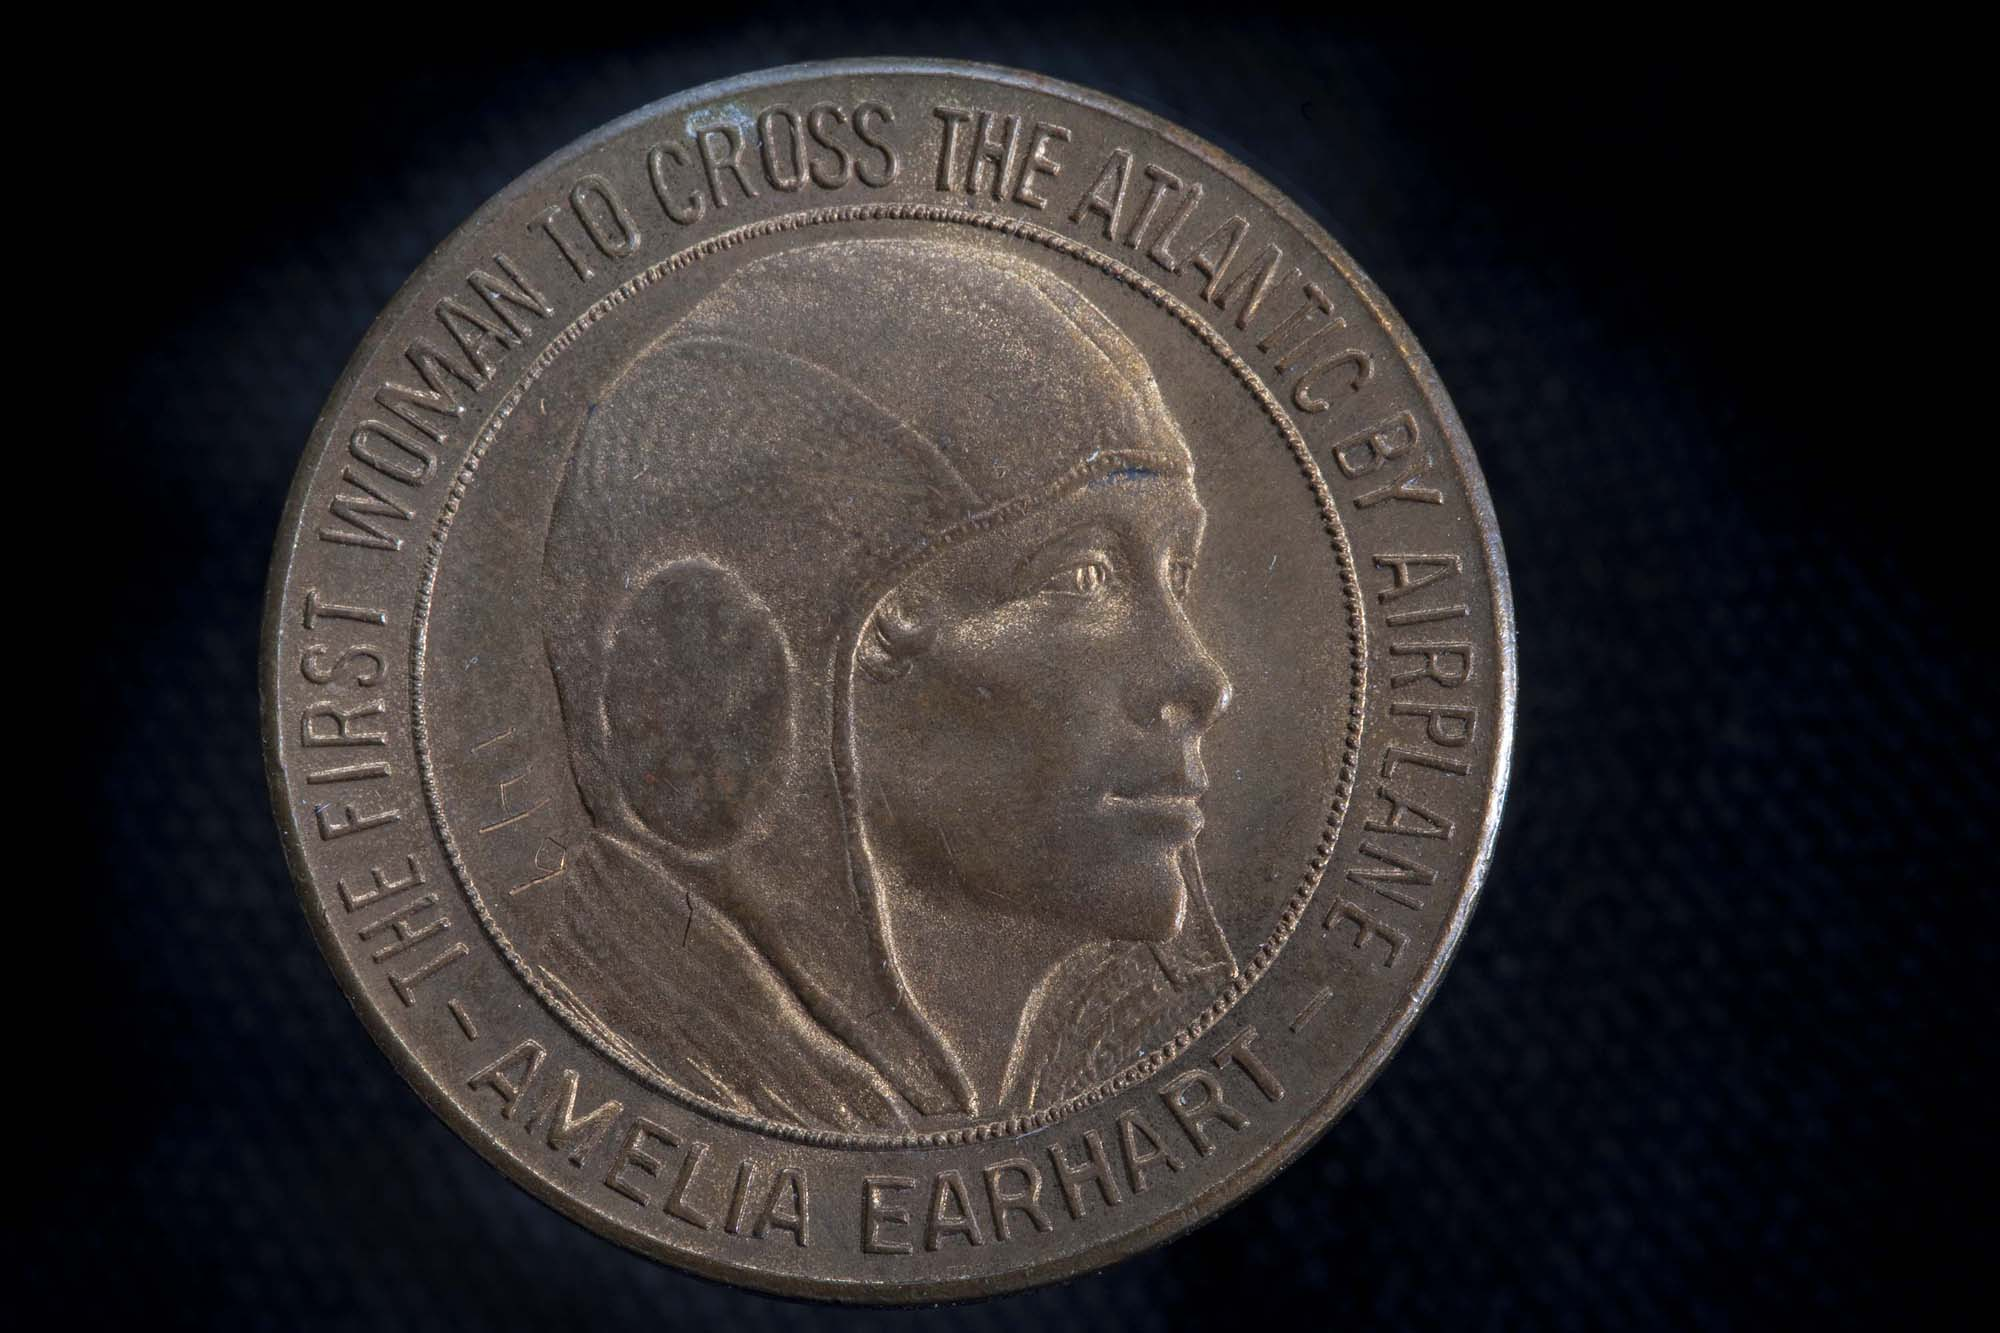 Amelia Earhart First Woman to Cross the Atlantic by Airplane Medal (Front)